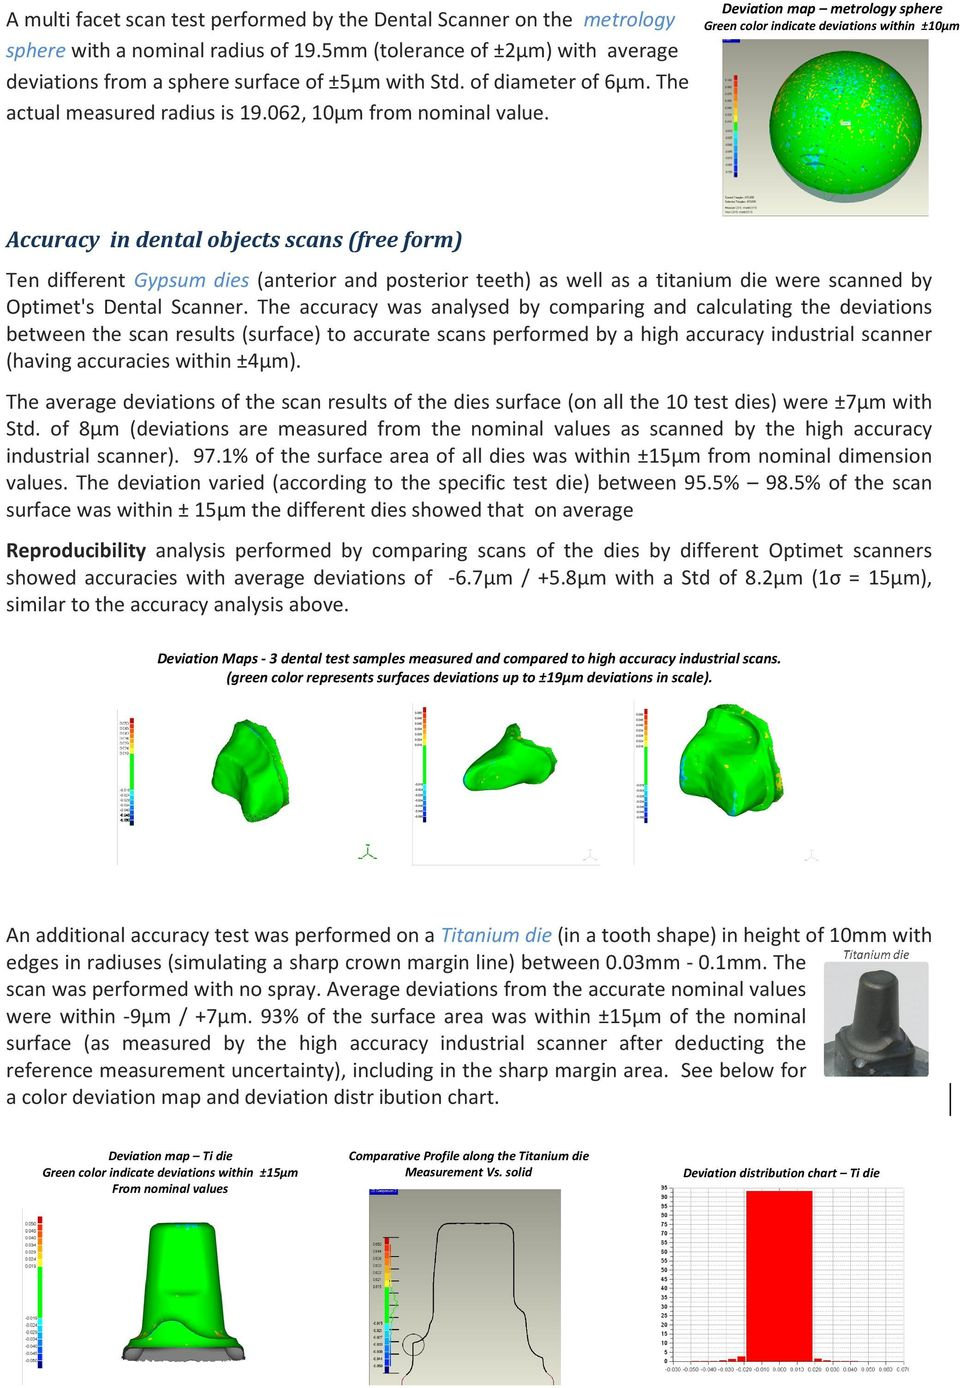 Deviation map metrology sphere Green color indicate deviations within ±10µm Accuracy in dental objects scans (free form) Ten different Gypsum dies (anterior and posterior teeth) as well as a titanium